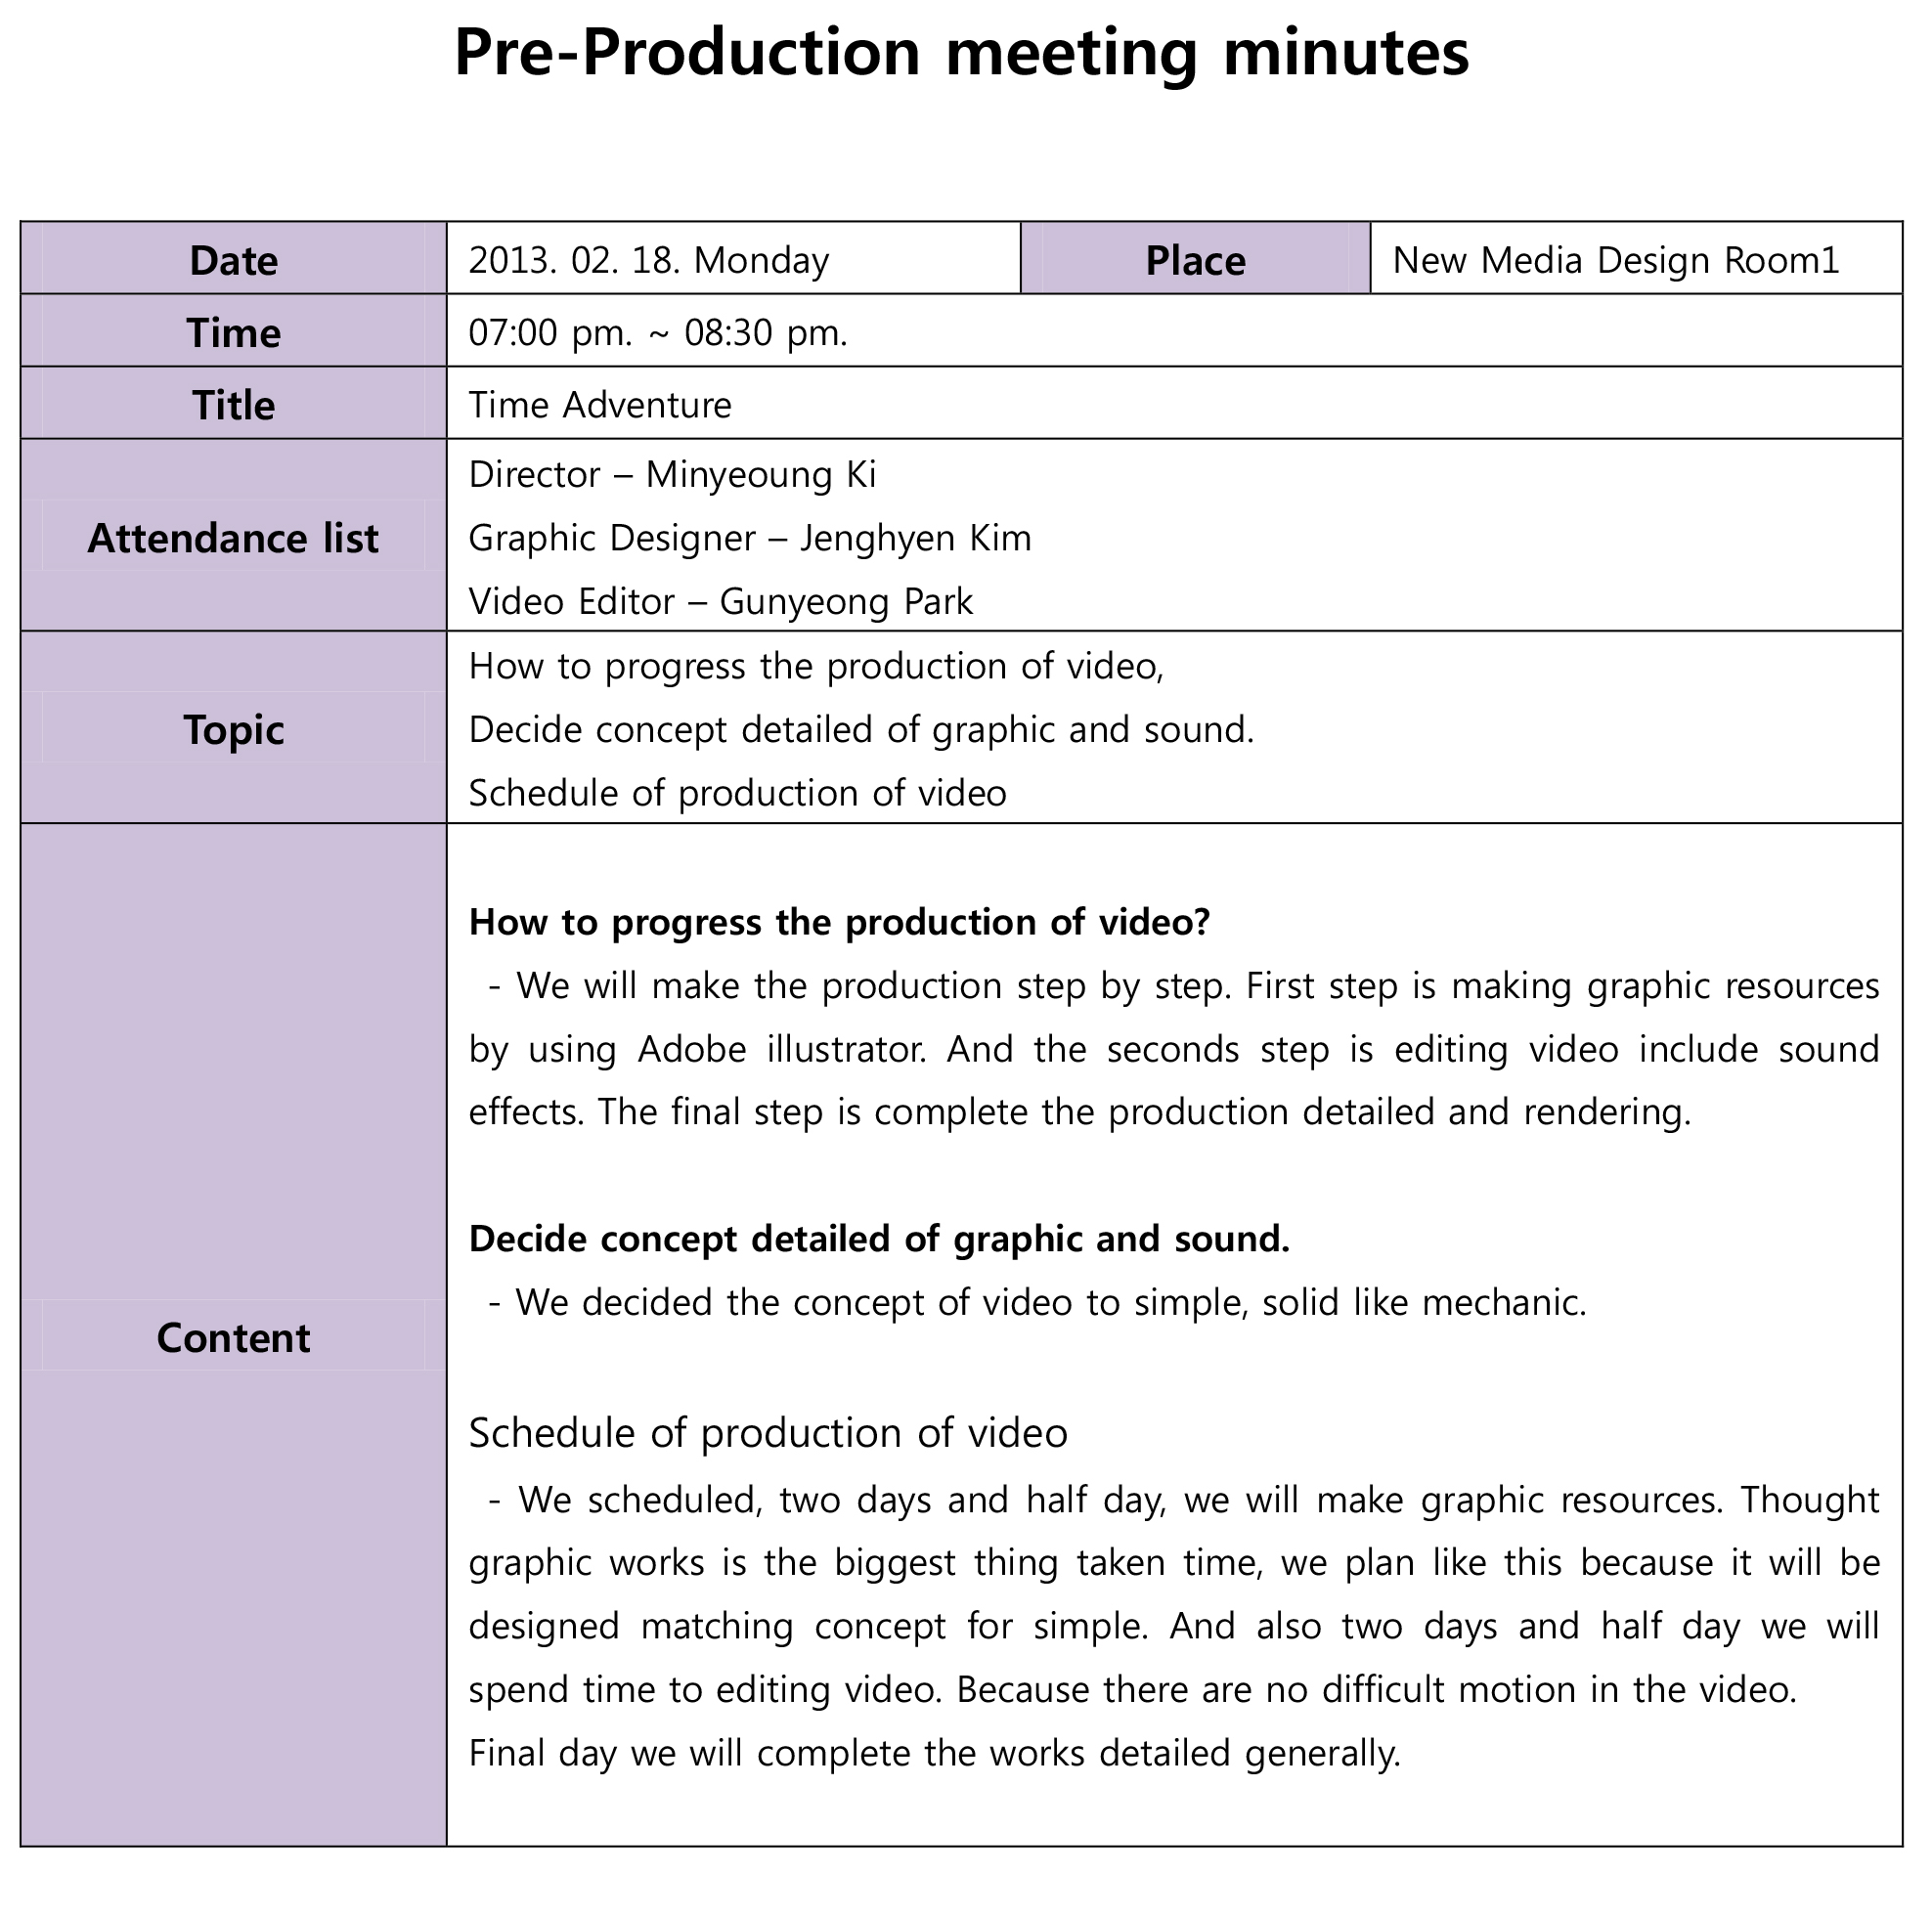 document arrange content of meeting meeting is an important things we